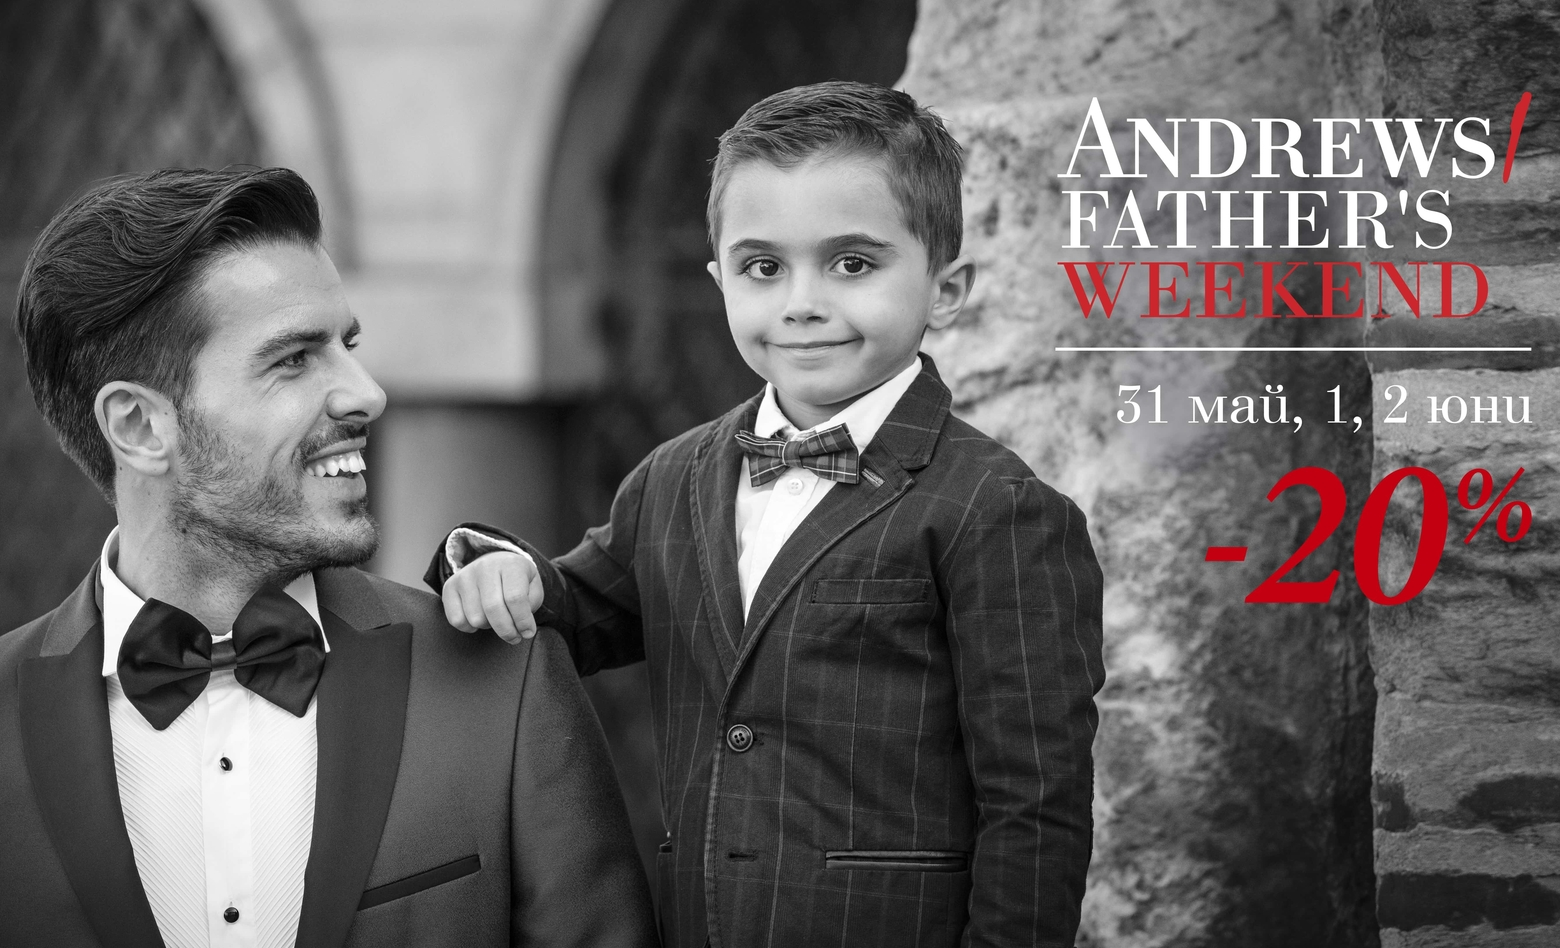 A Father's Weekend Initiative at Andrews/